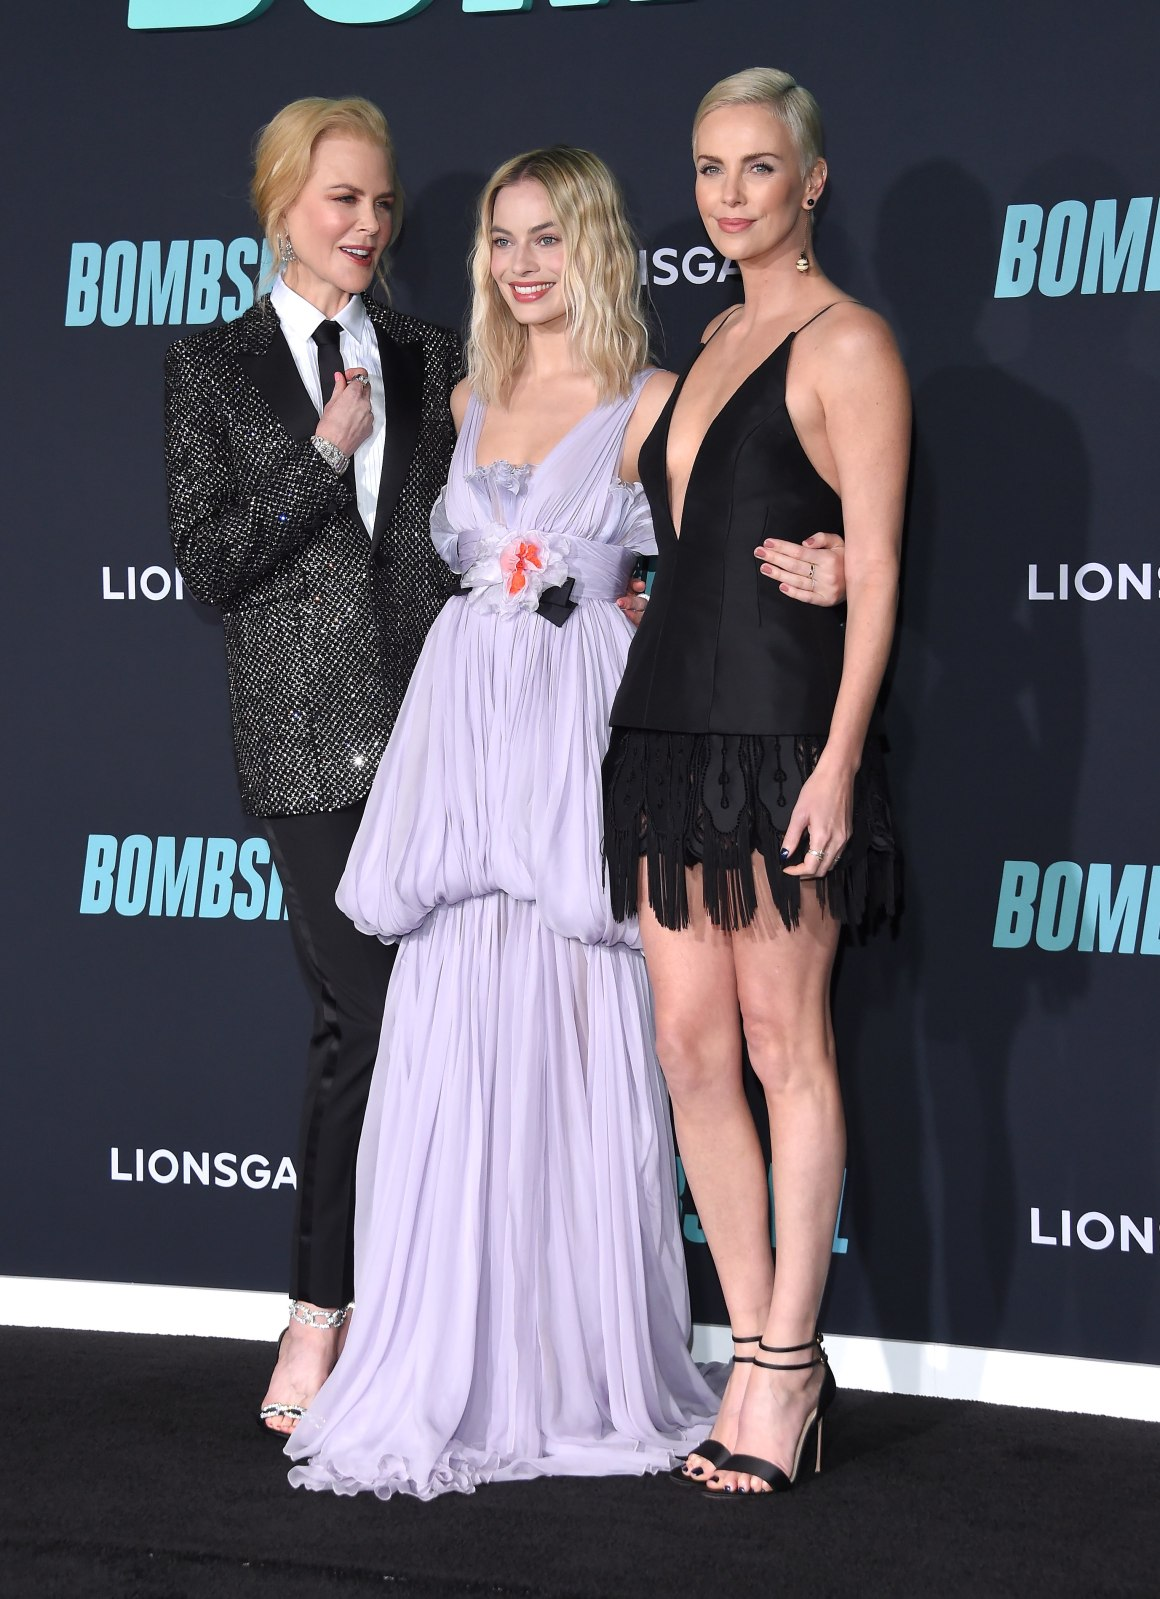 The Bombshell Premiere